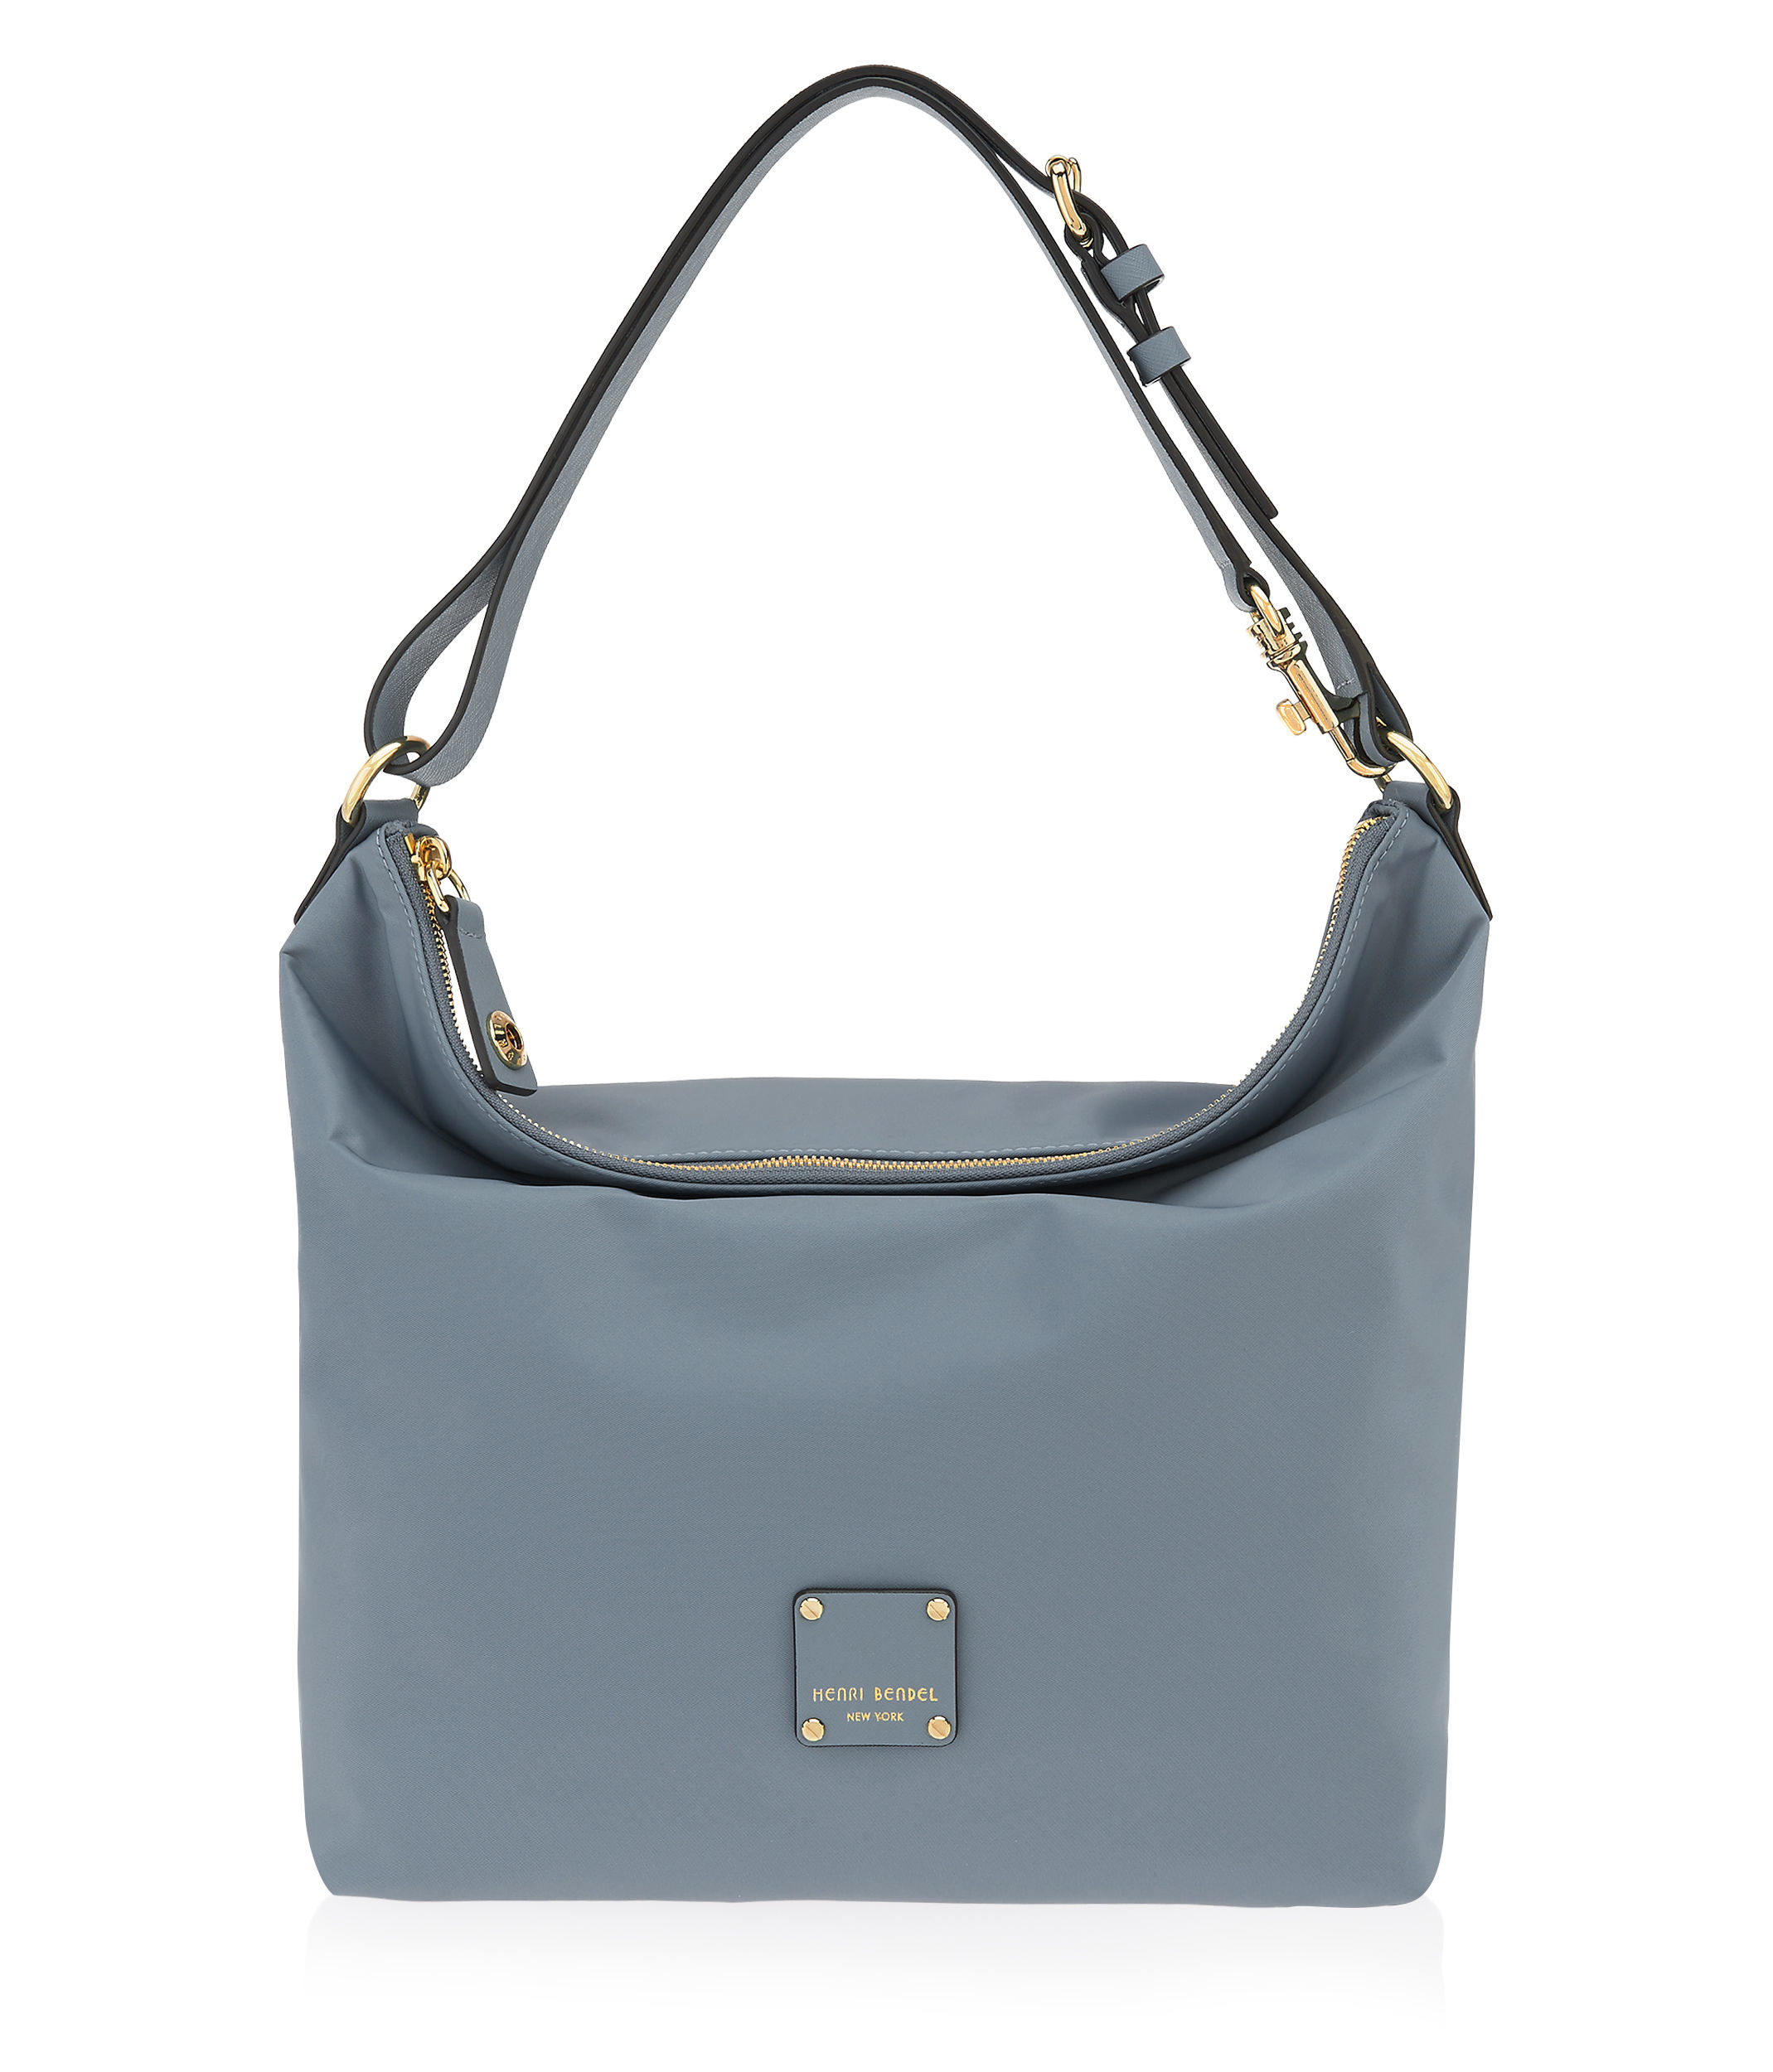 Henri bendel Jetsetter Convertible Hobo in Gray | Lyst